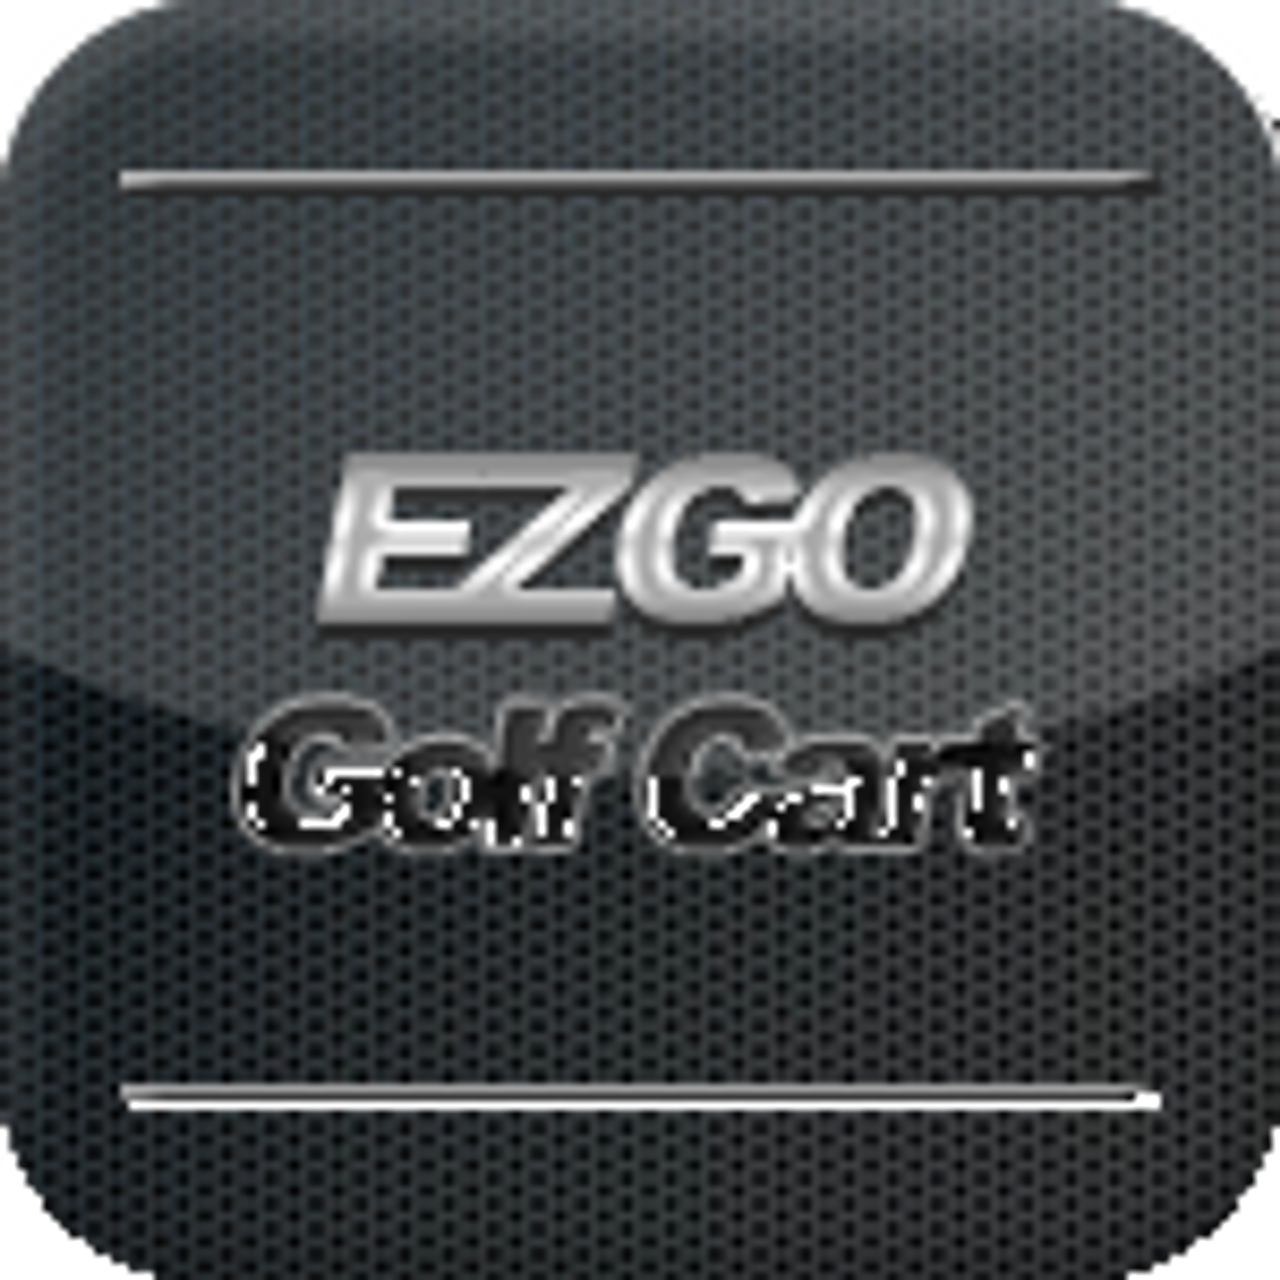 EZGO Chrome and Stainless Accessories